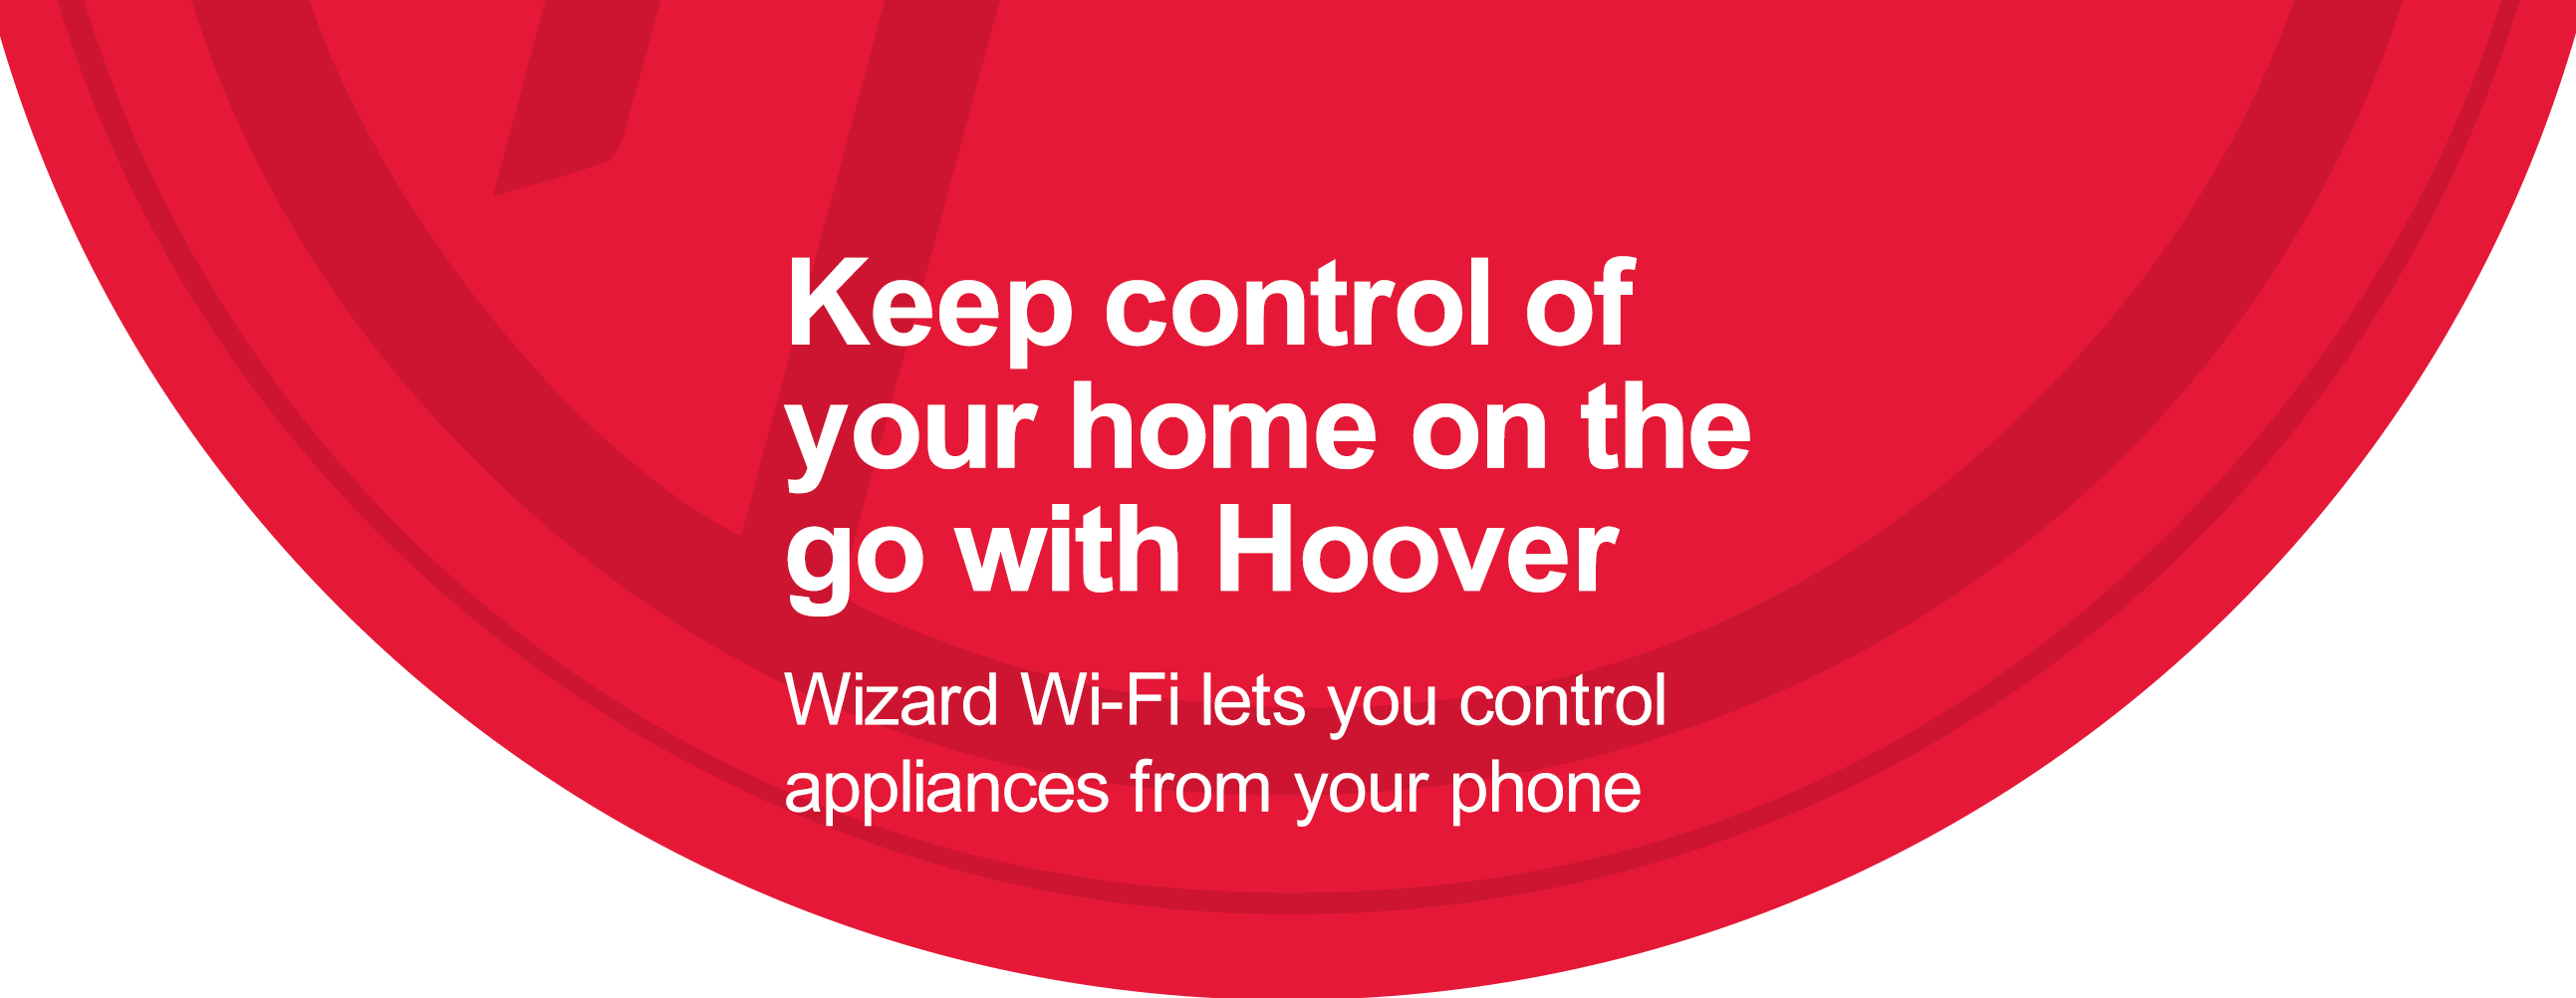 Create a connected kicthen with hoover appliances.. - you're never far from home with Wizard Wi-Fi